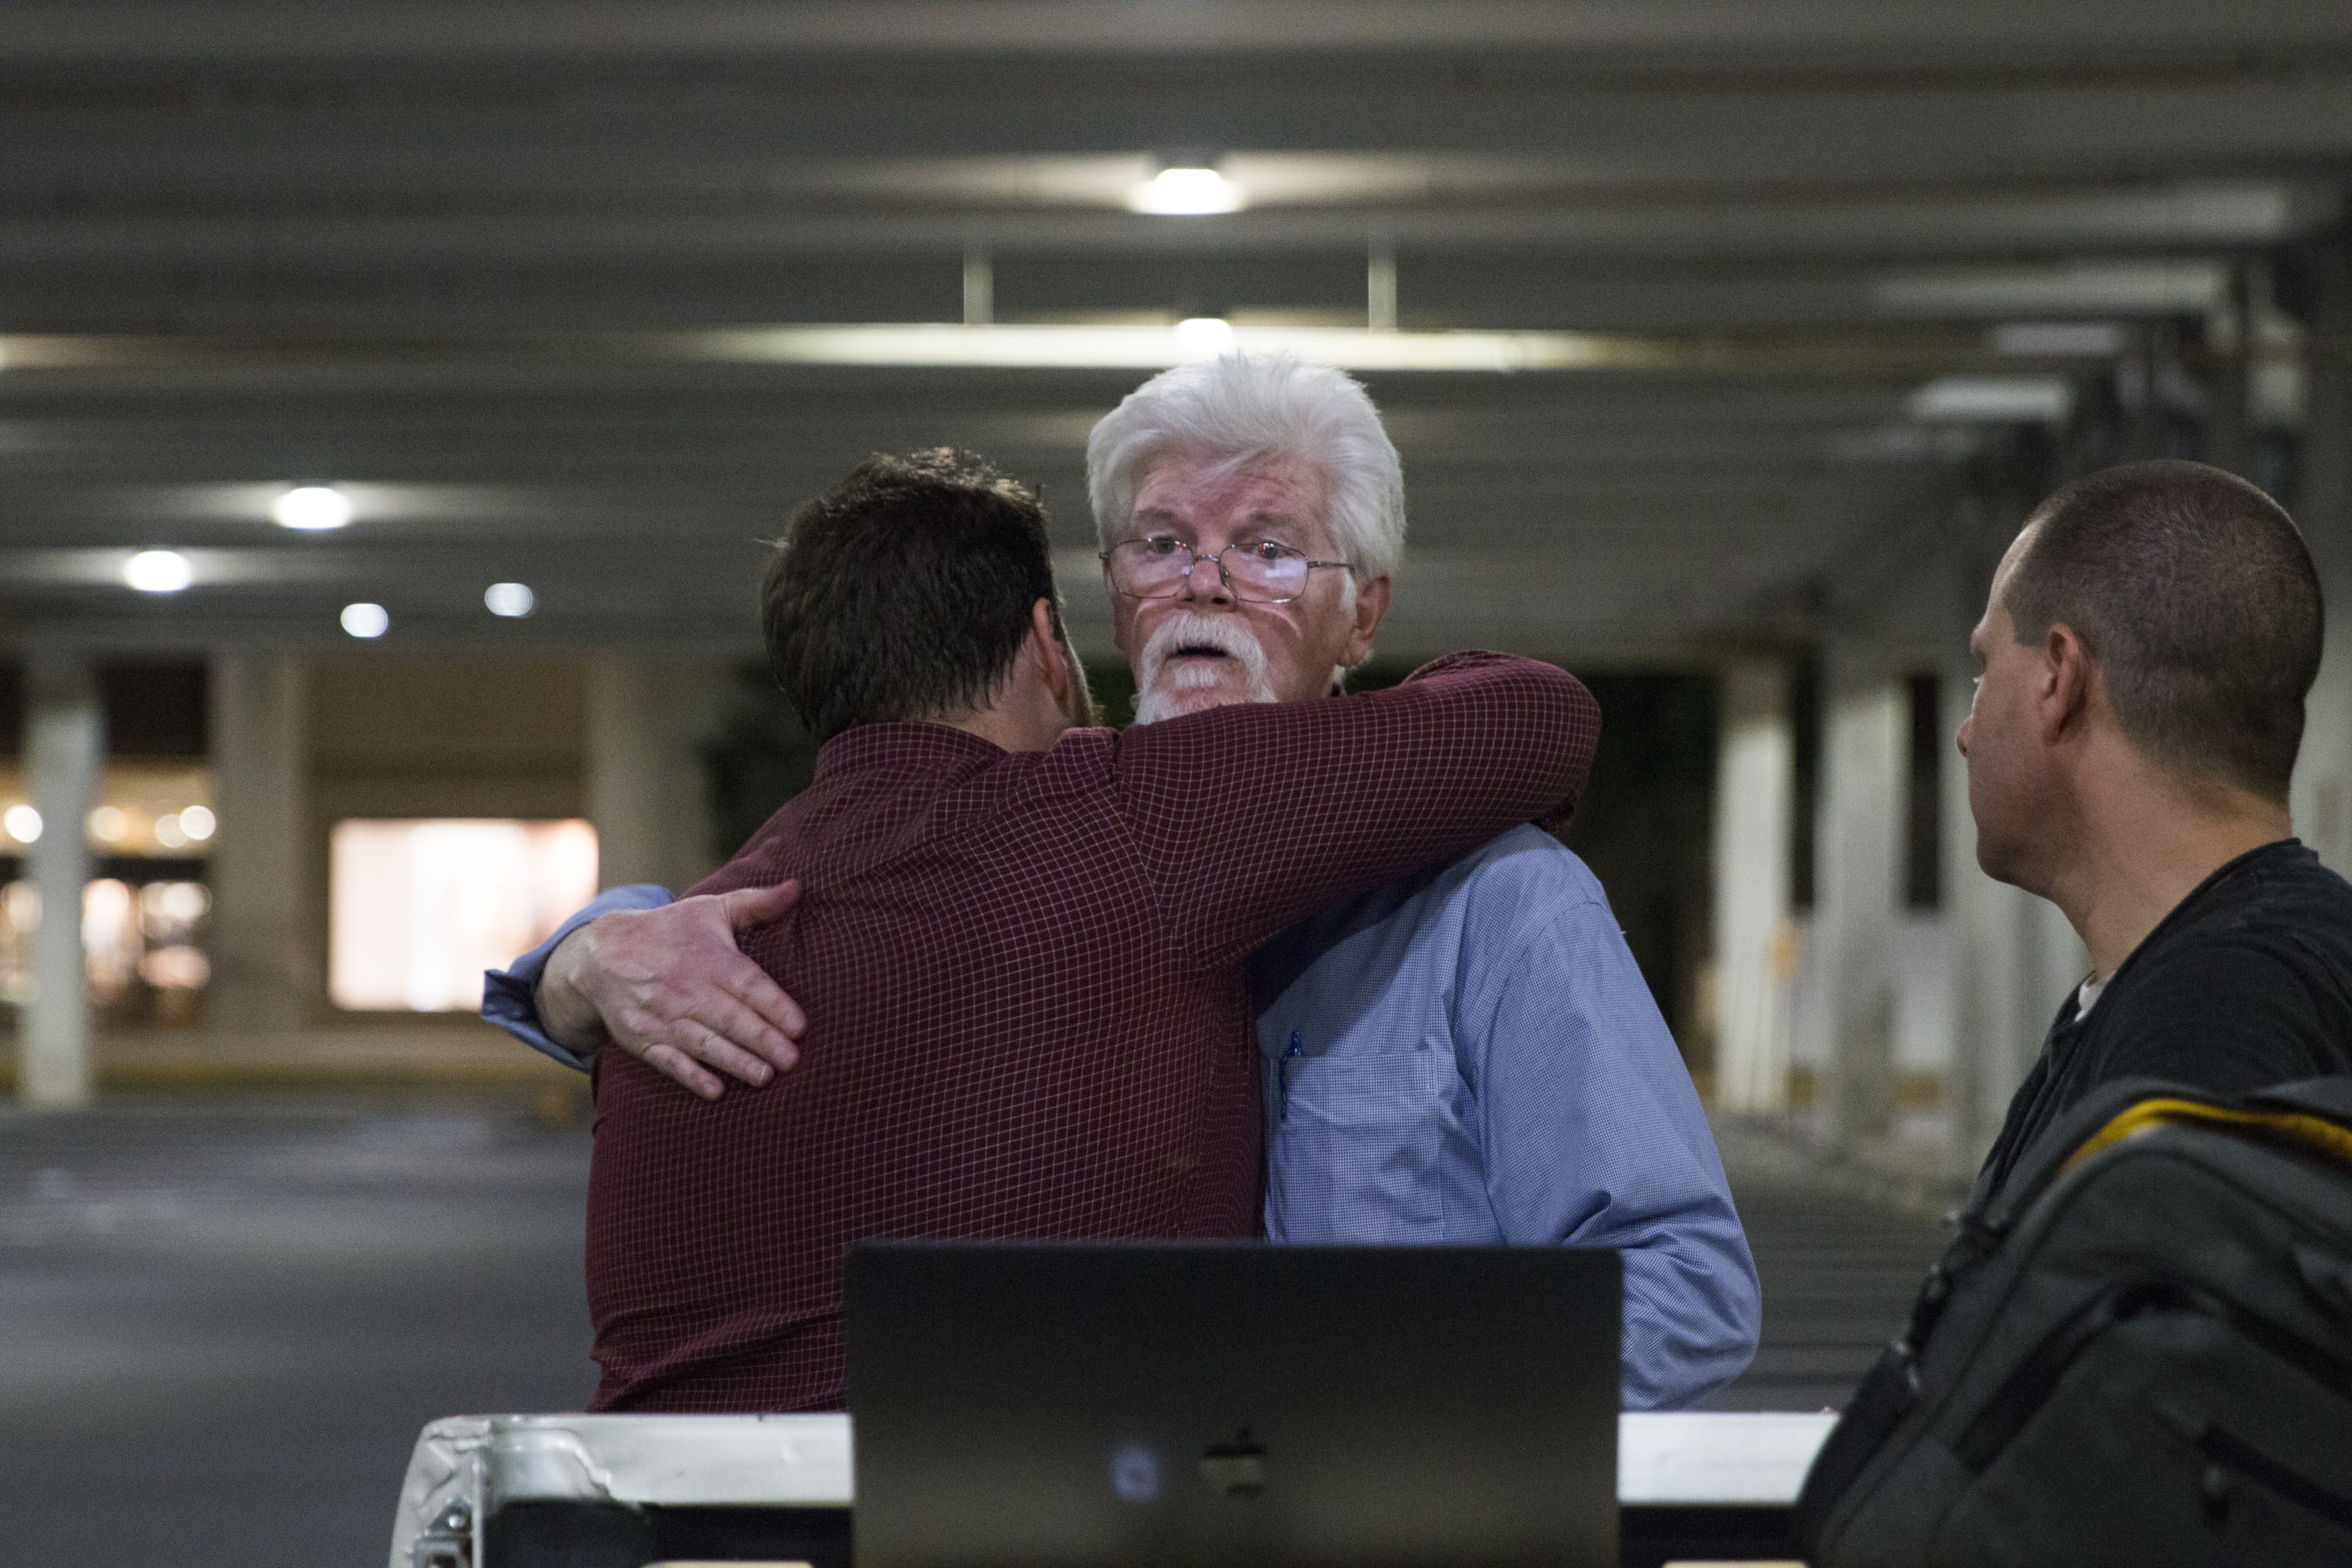 In this Thursday, June 28, 2018 photo, The Capital Gazette reporters Pat Furgurson, center, and Chase Cook hug at a makeshift office in a parking garage of a mall in Annapolis, Md., during coverage of the fatal shootings that happened in their paper´s newsroom earlier in the day.